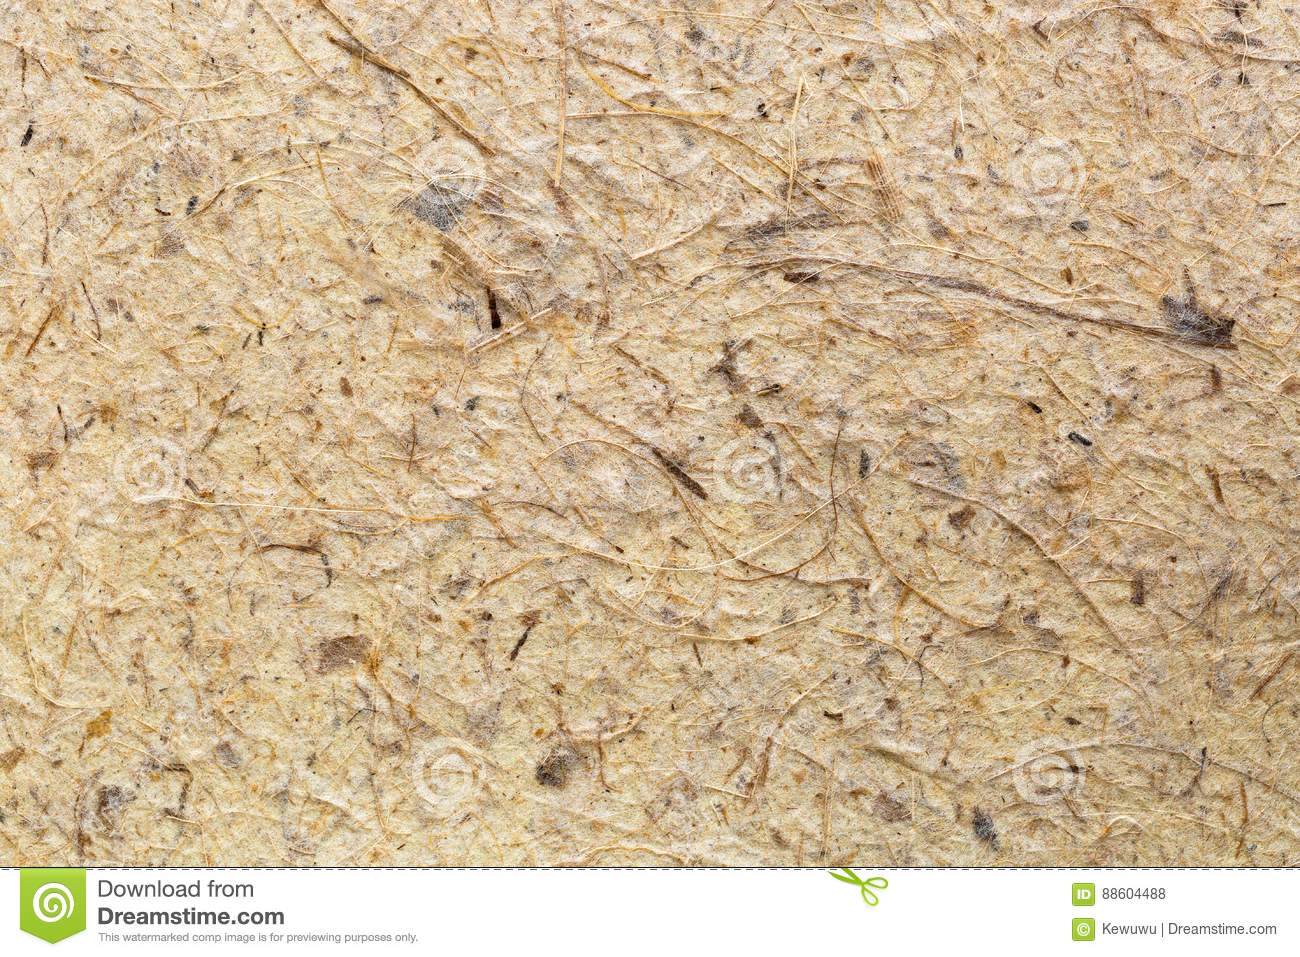 Background texture of handmade rice paper made of paper mulberry